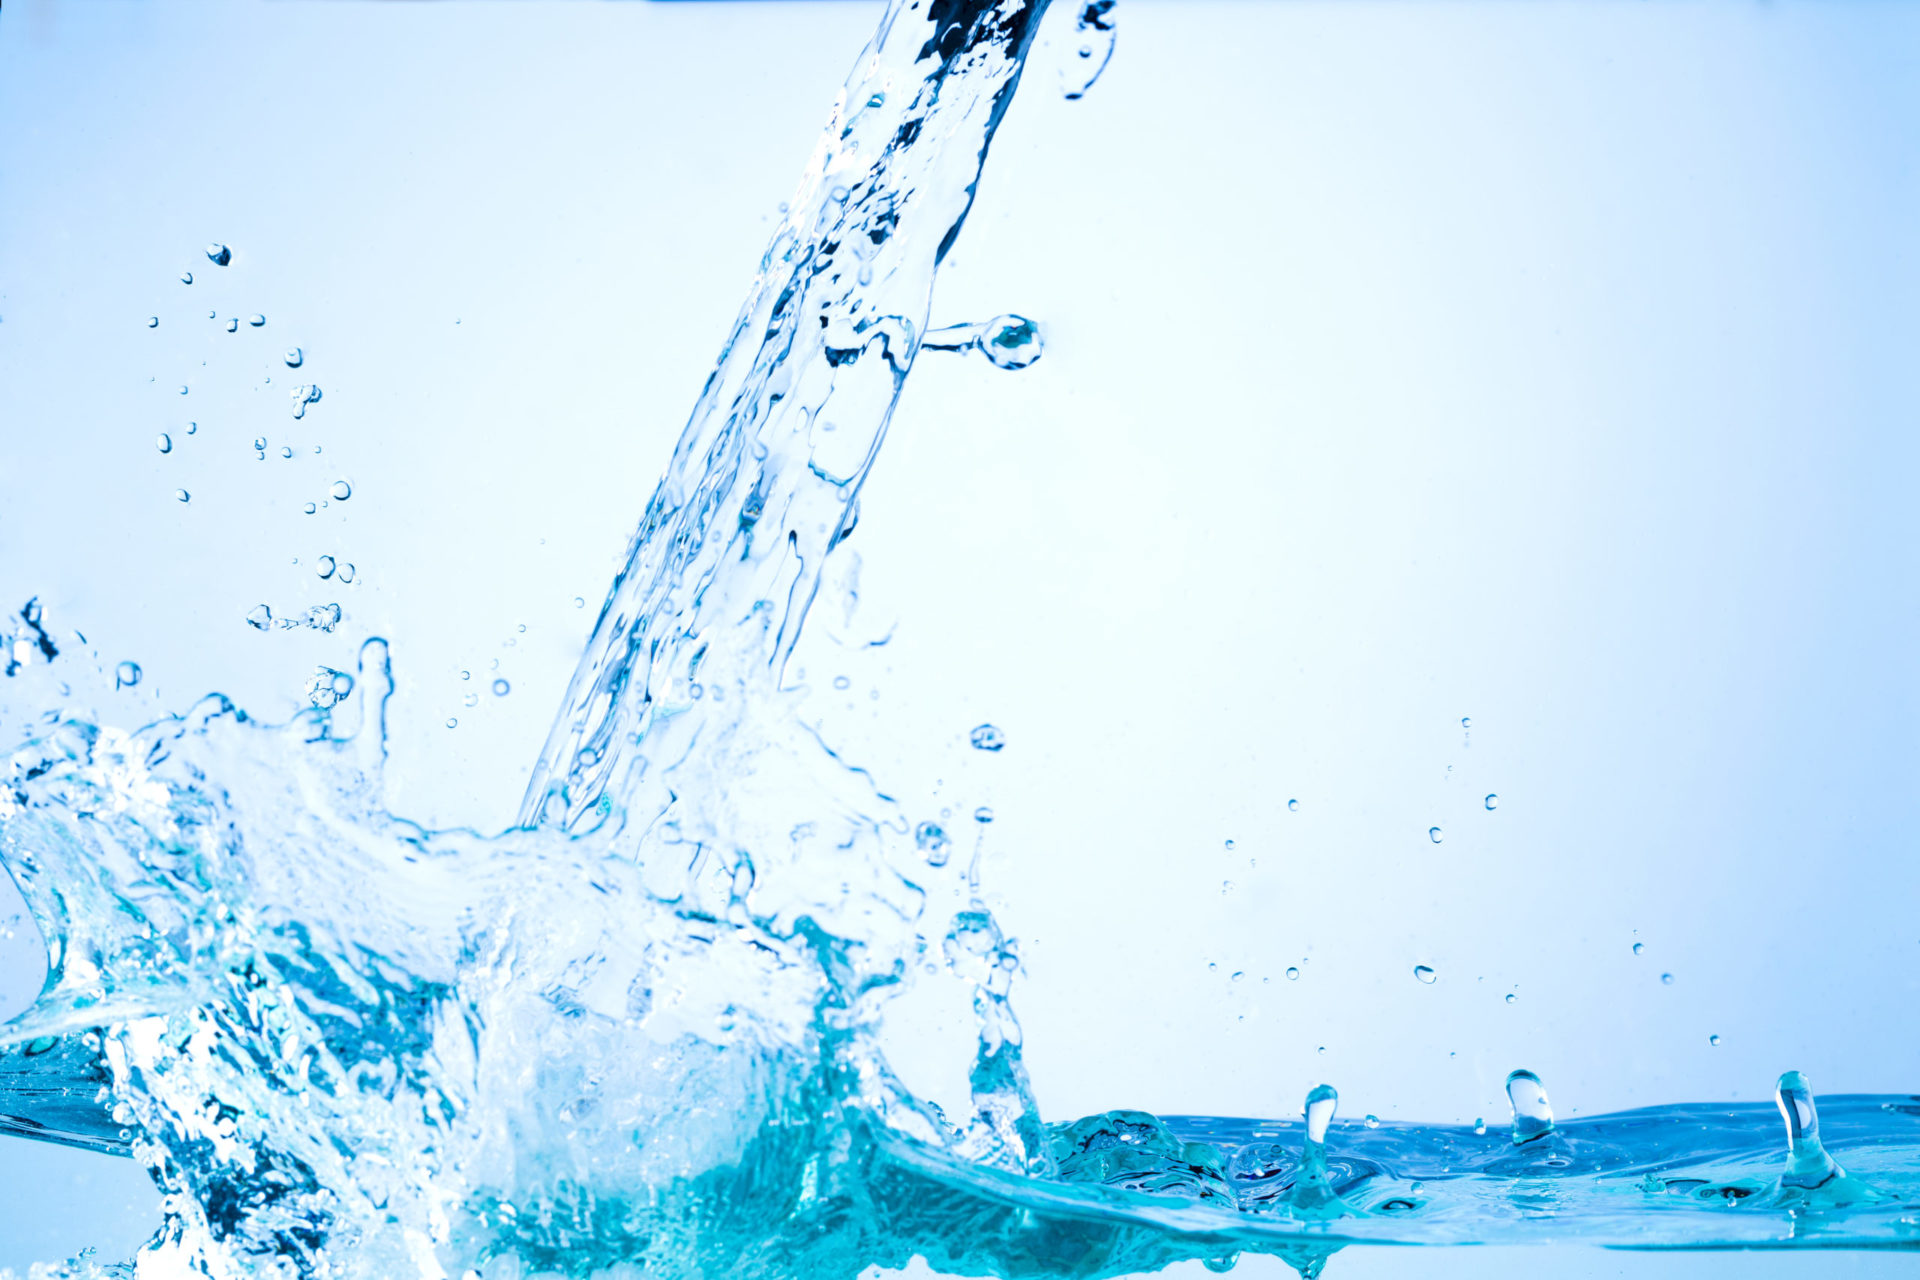 neutral background image of flowing water with splashes and drops of water